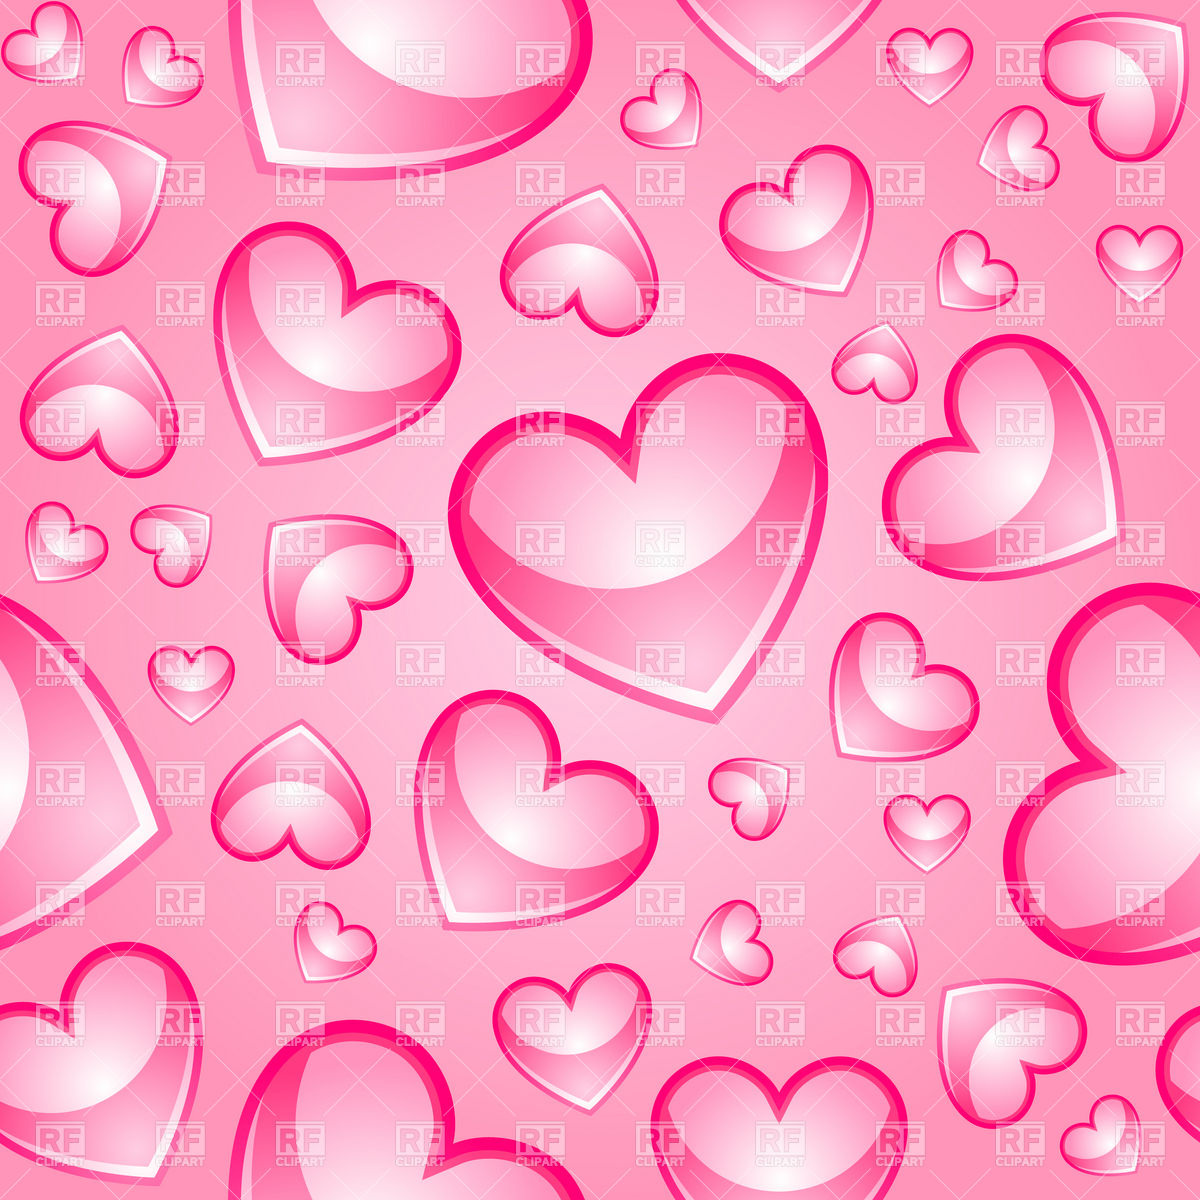 download Seamless pink background with glossy hearts 17383 1200x1200